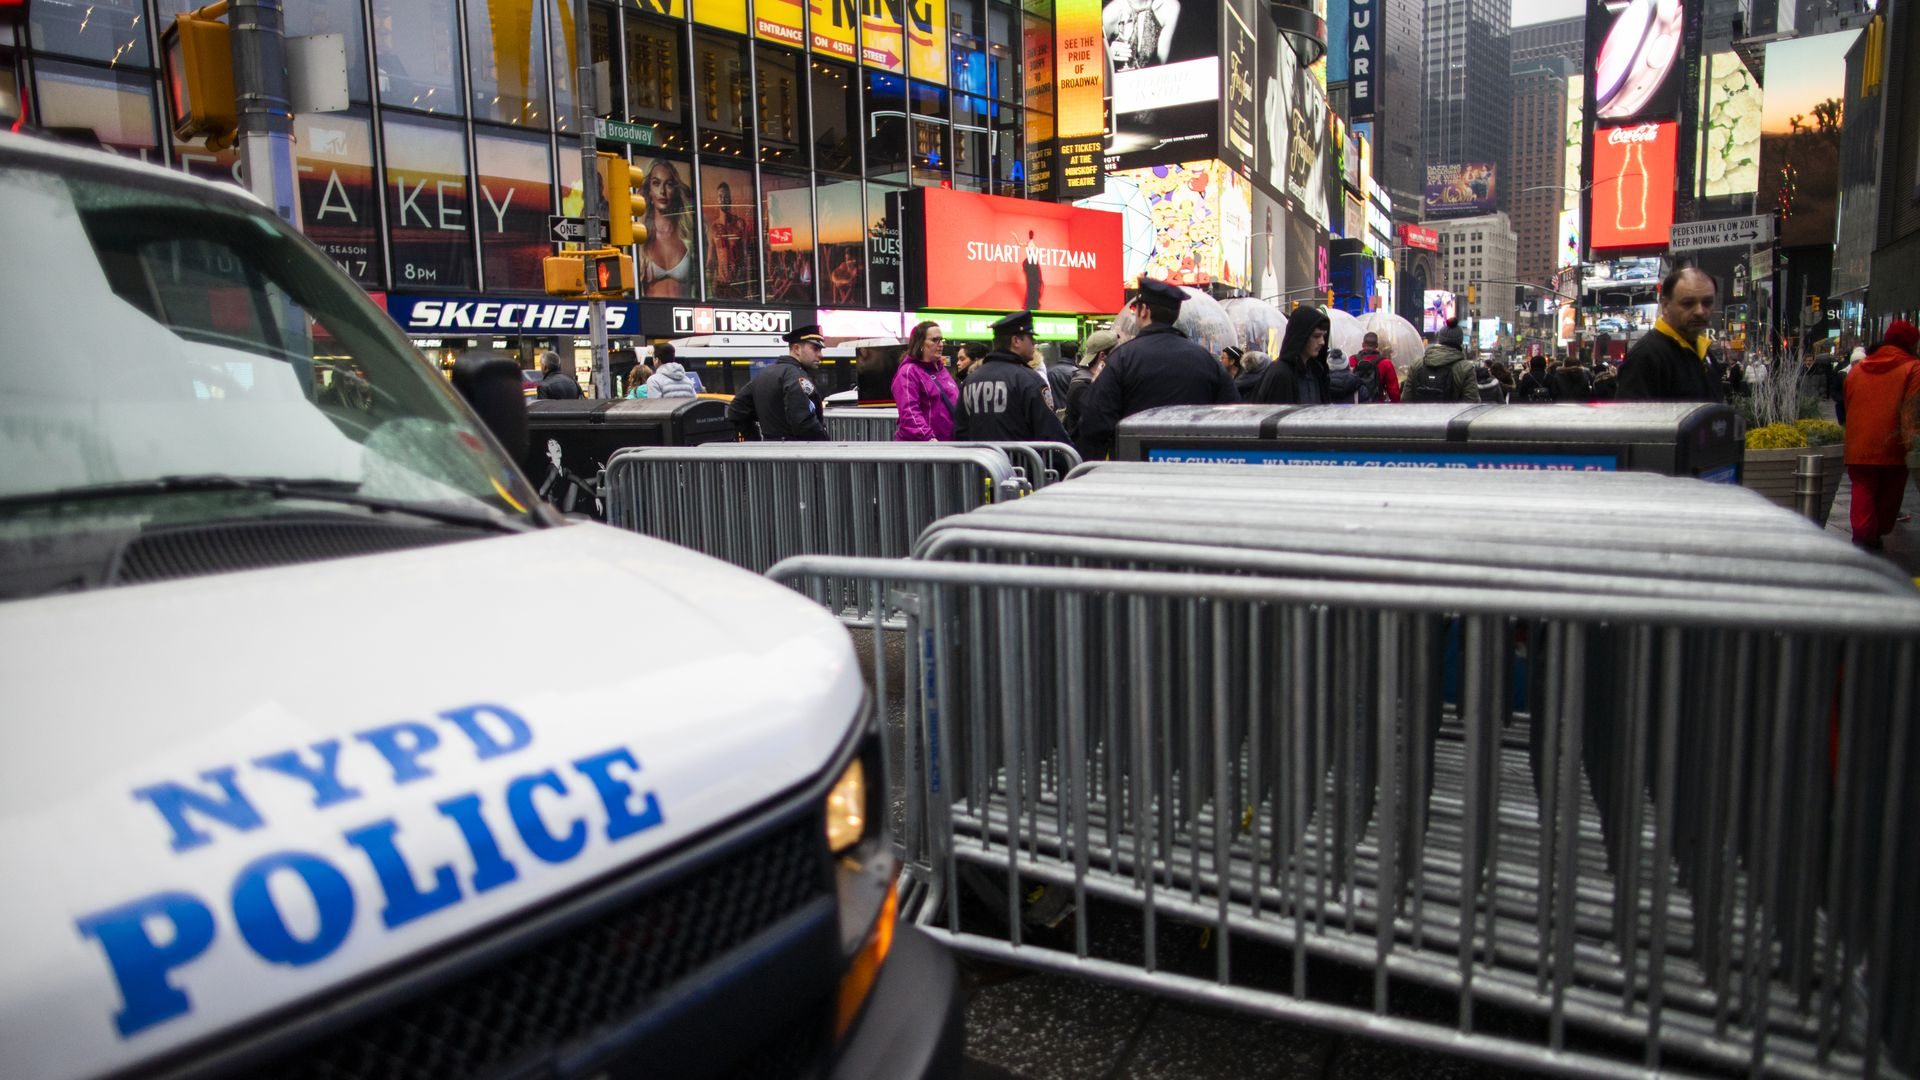 """In this image, a NYPD vehicle says """"NYPD police"""" on it"""